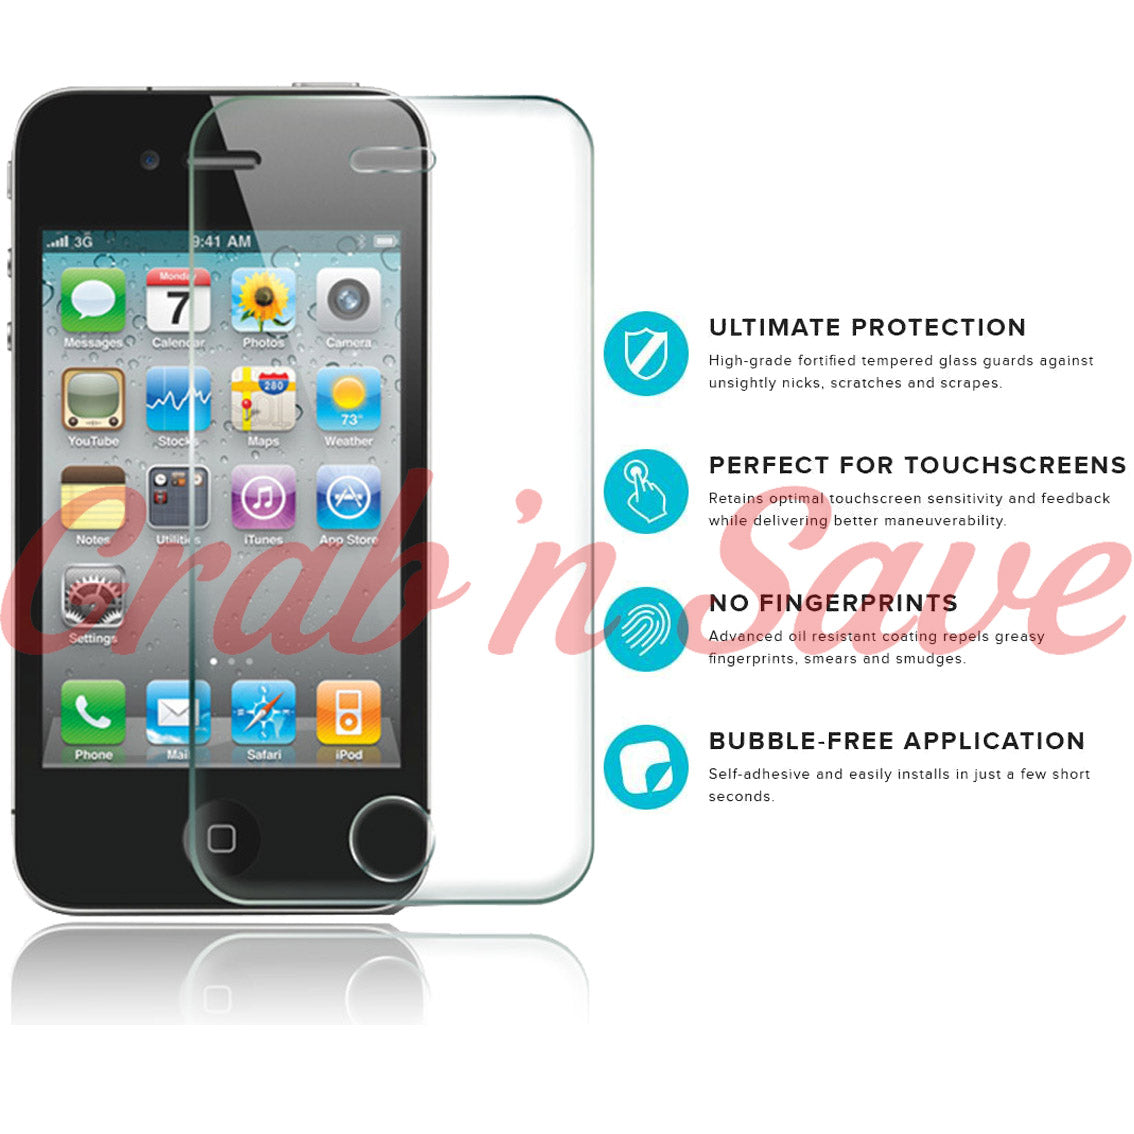 iPhone 4S Screen Protector, Glass Screen Protector, Tempered Glass Screen Protector